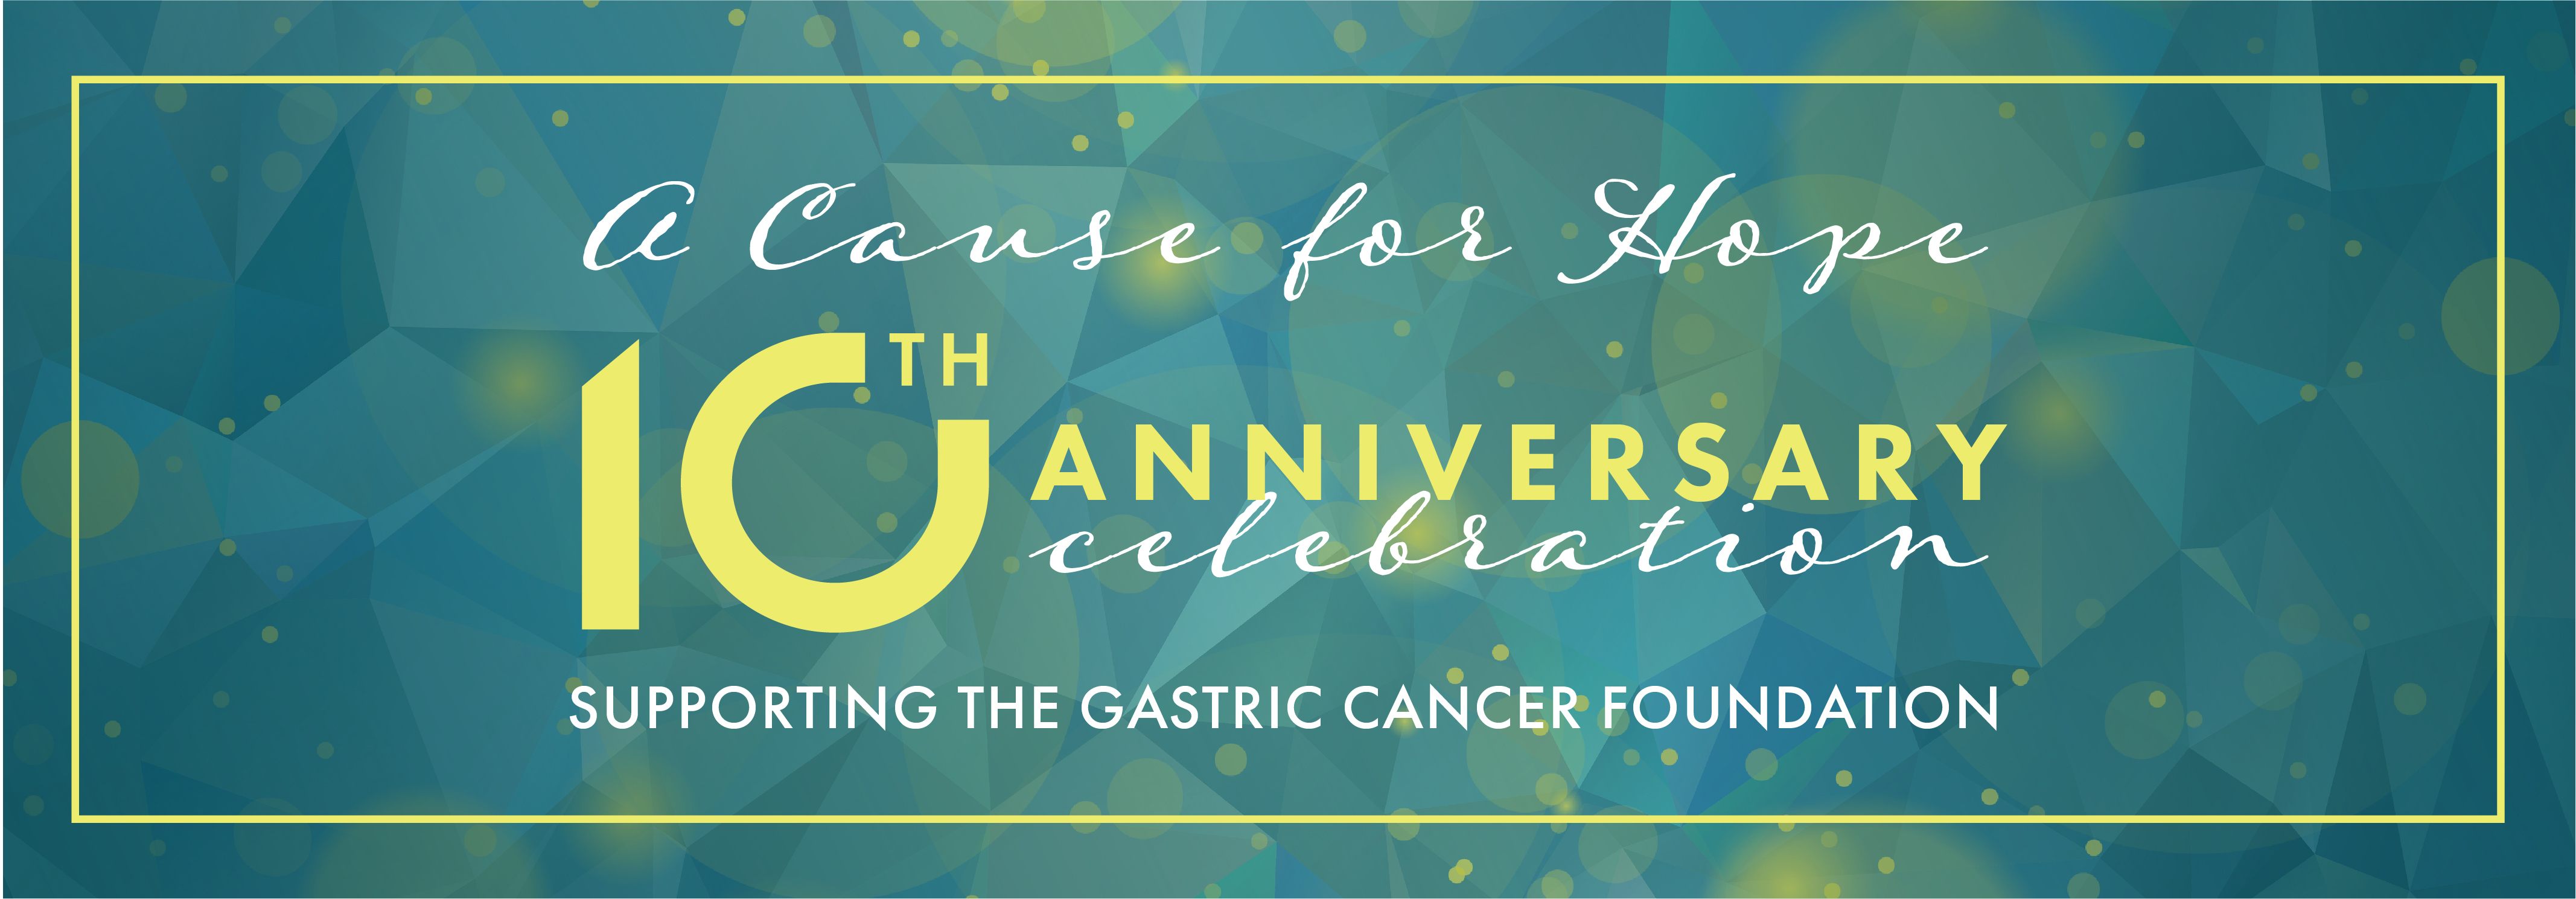 A Cause for Hope 10th Anniversary Celebration Supporting the Gastric Cancer Foundation